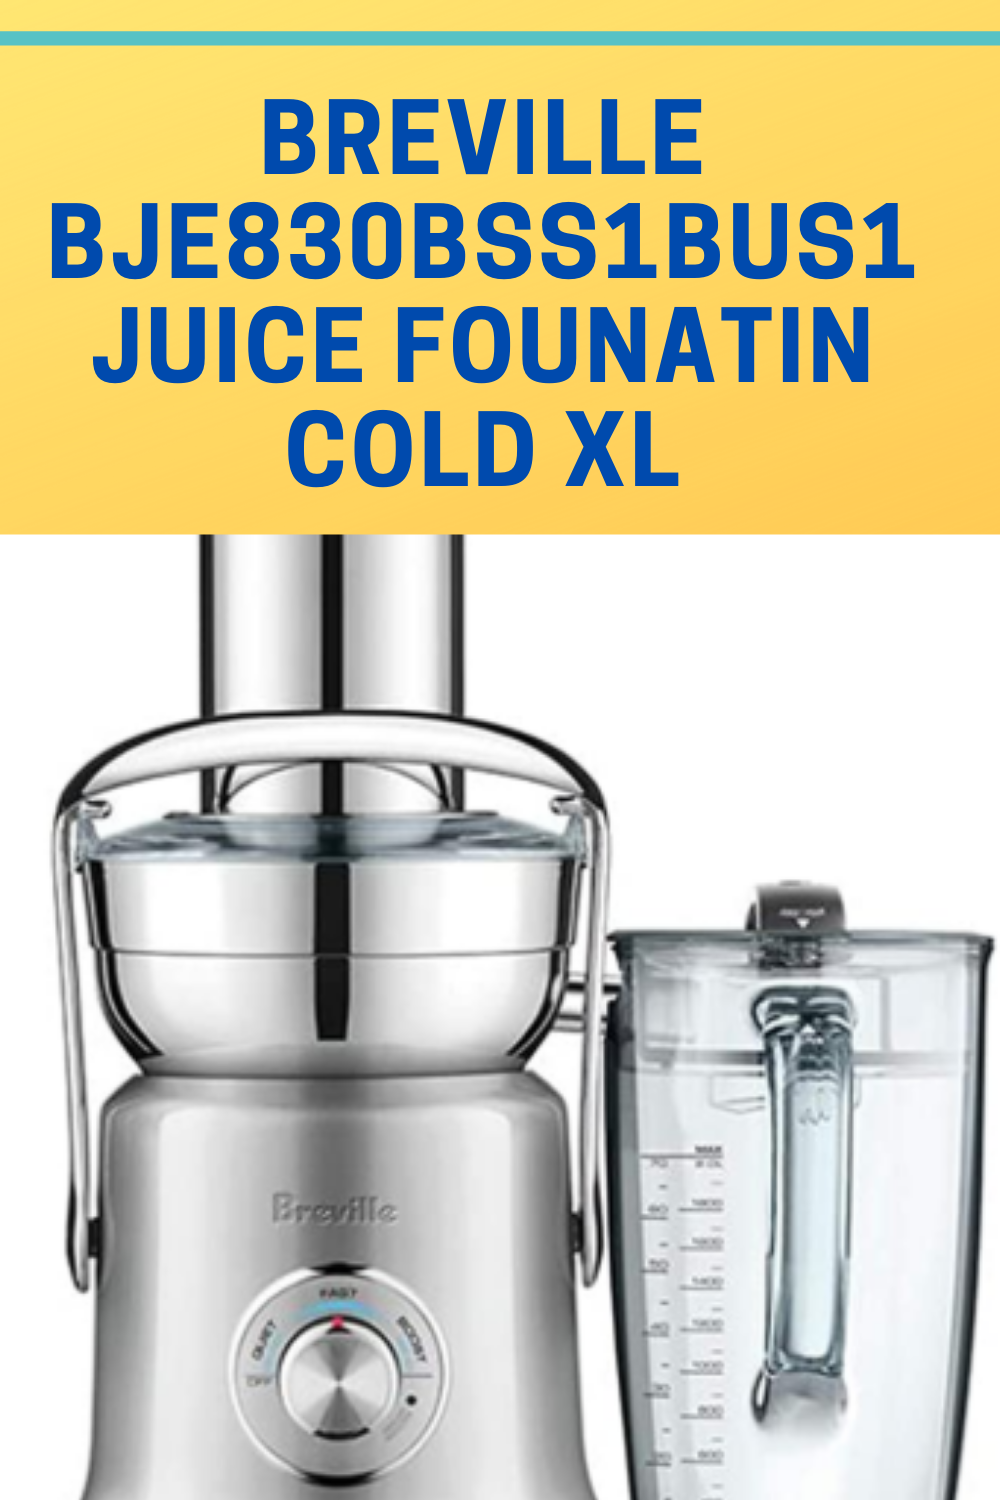 Juice Fountain Cold XL